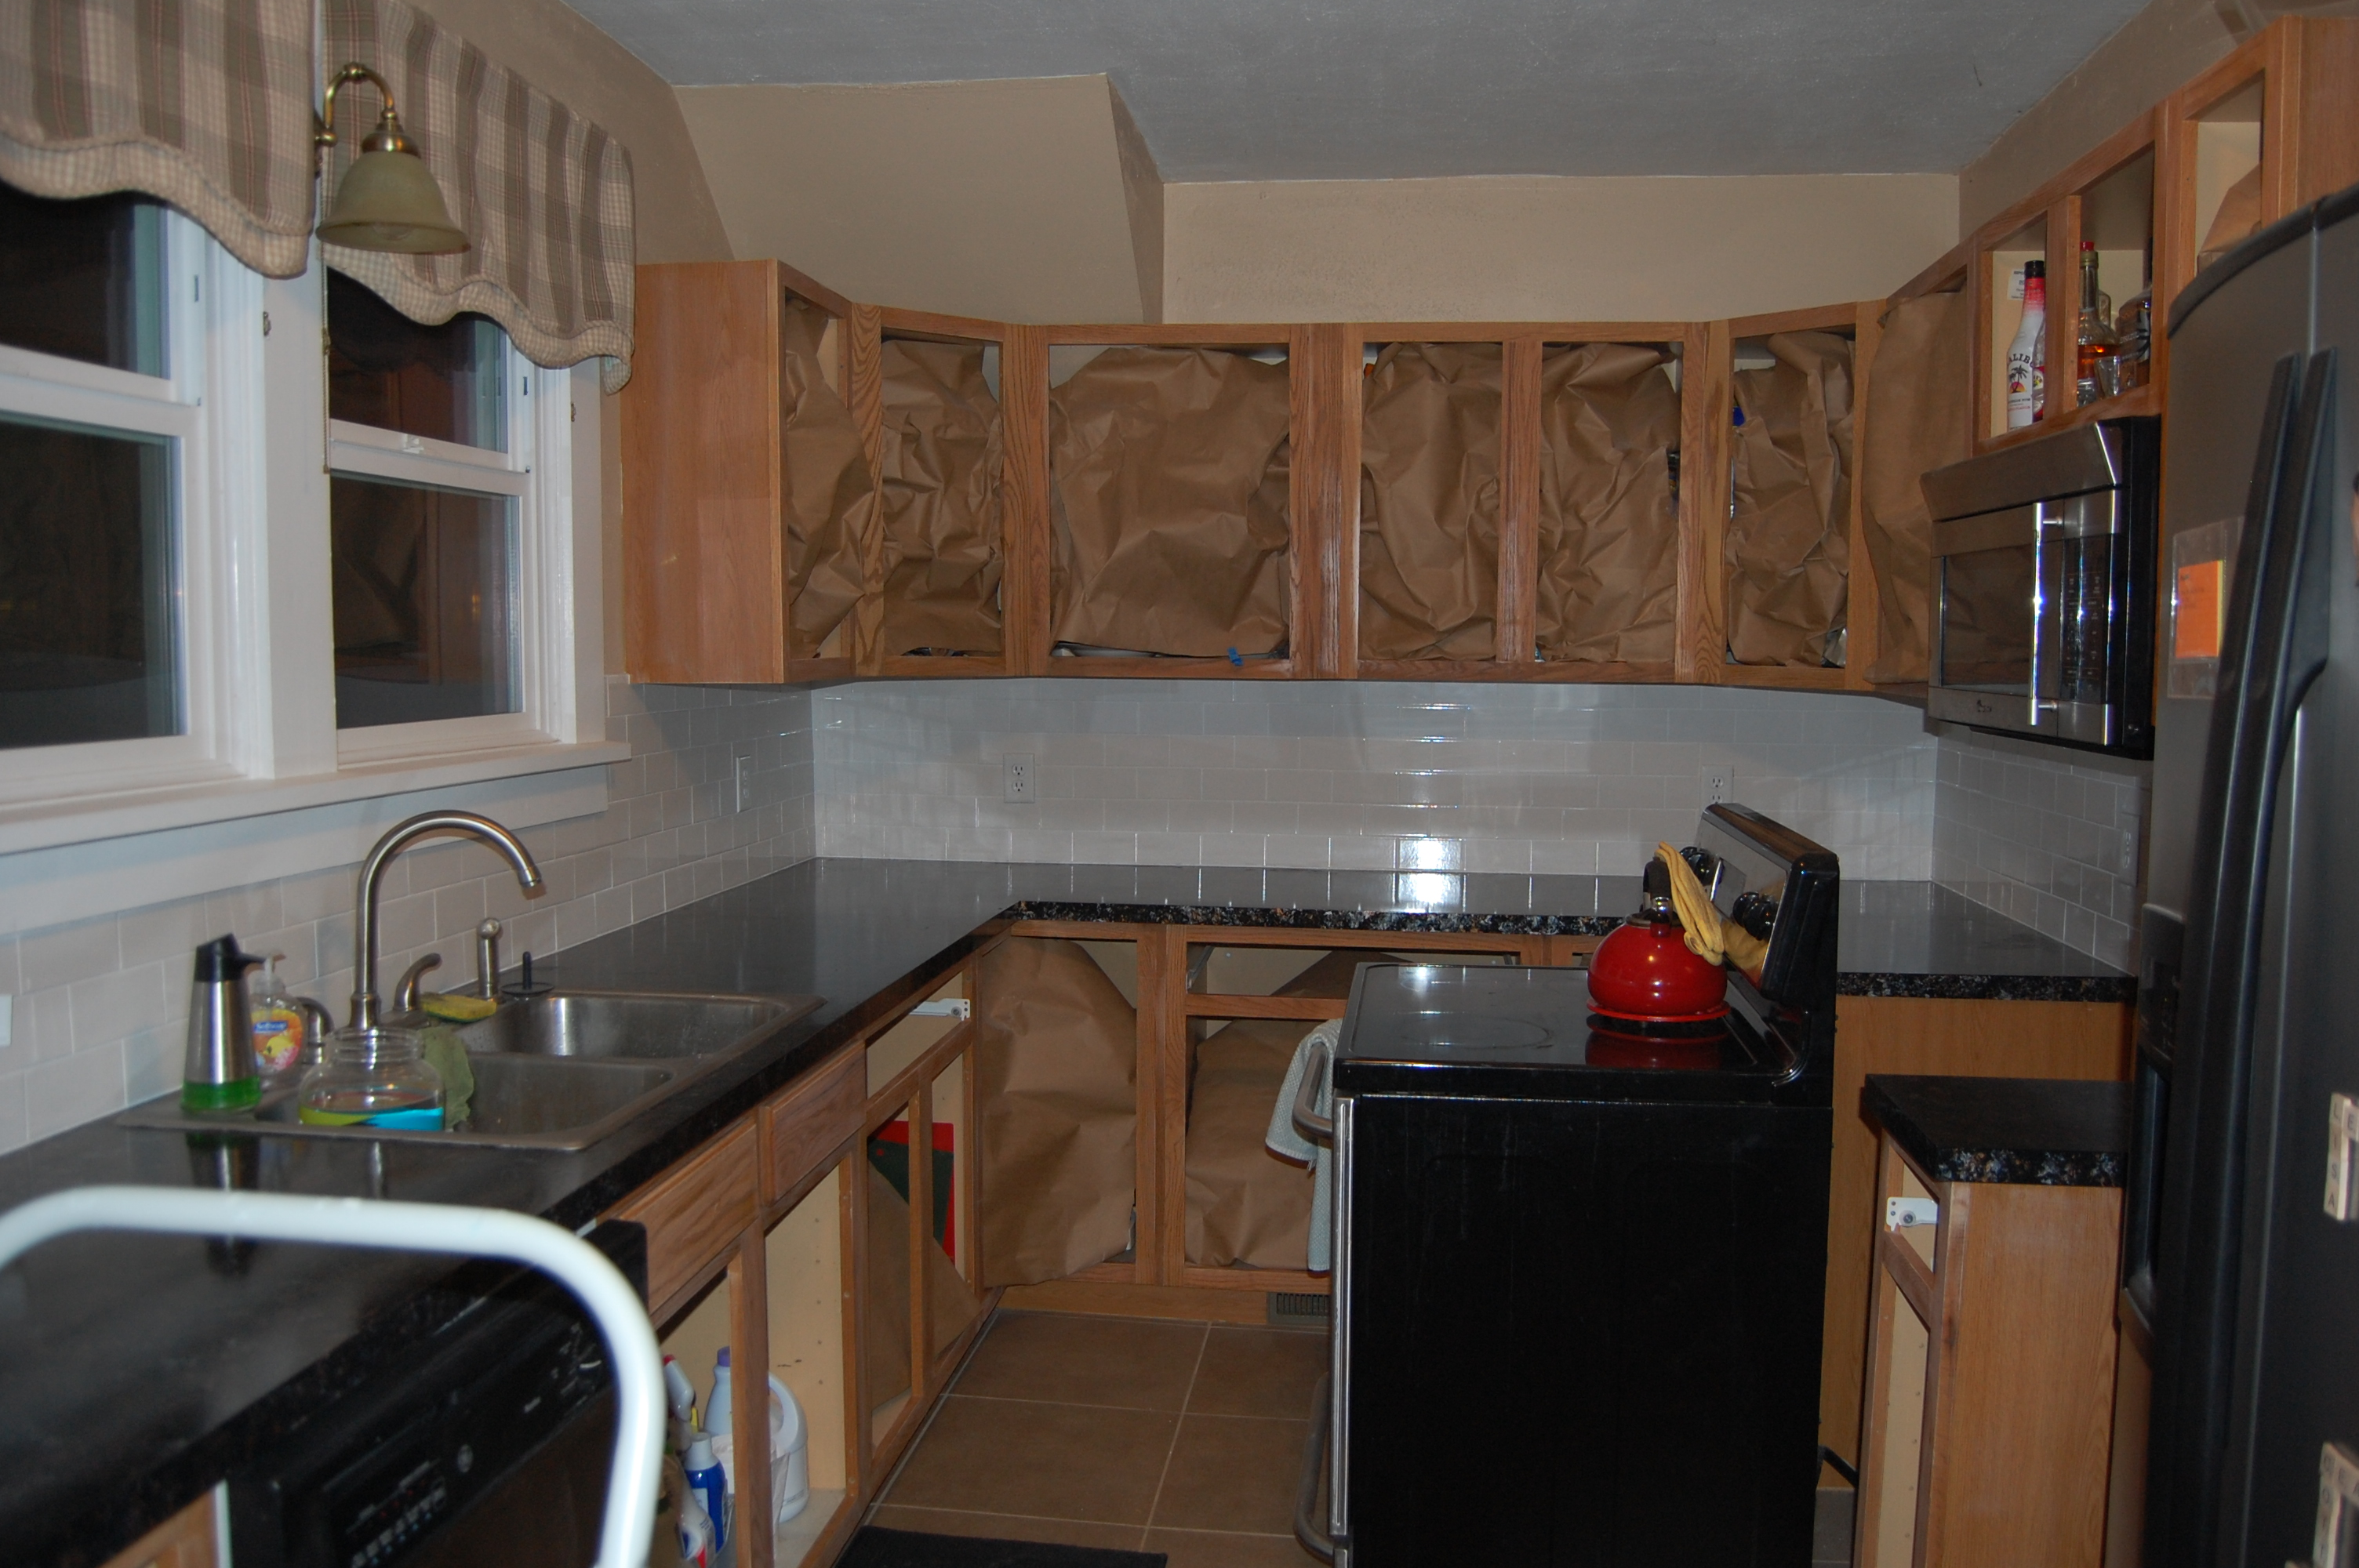 Best quality kitchen cabinets - Painting Kitchen Cabinets Painting Kitchen Cabinets Day 2 Paint